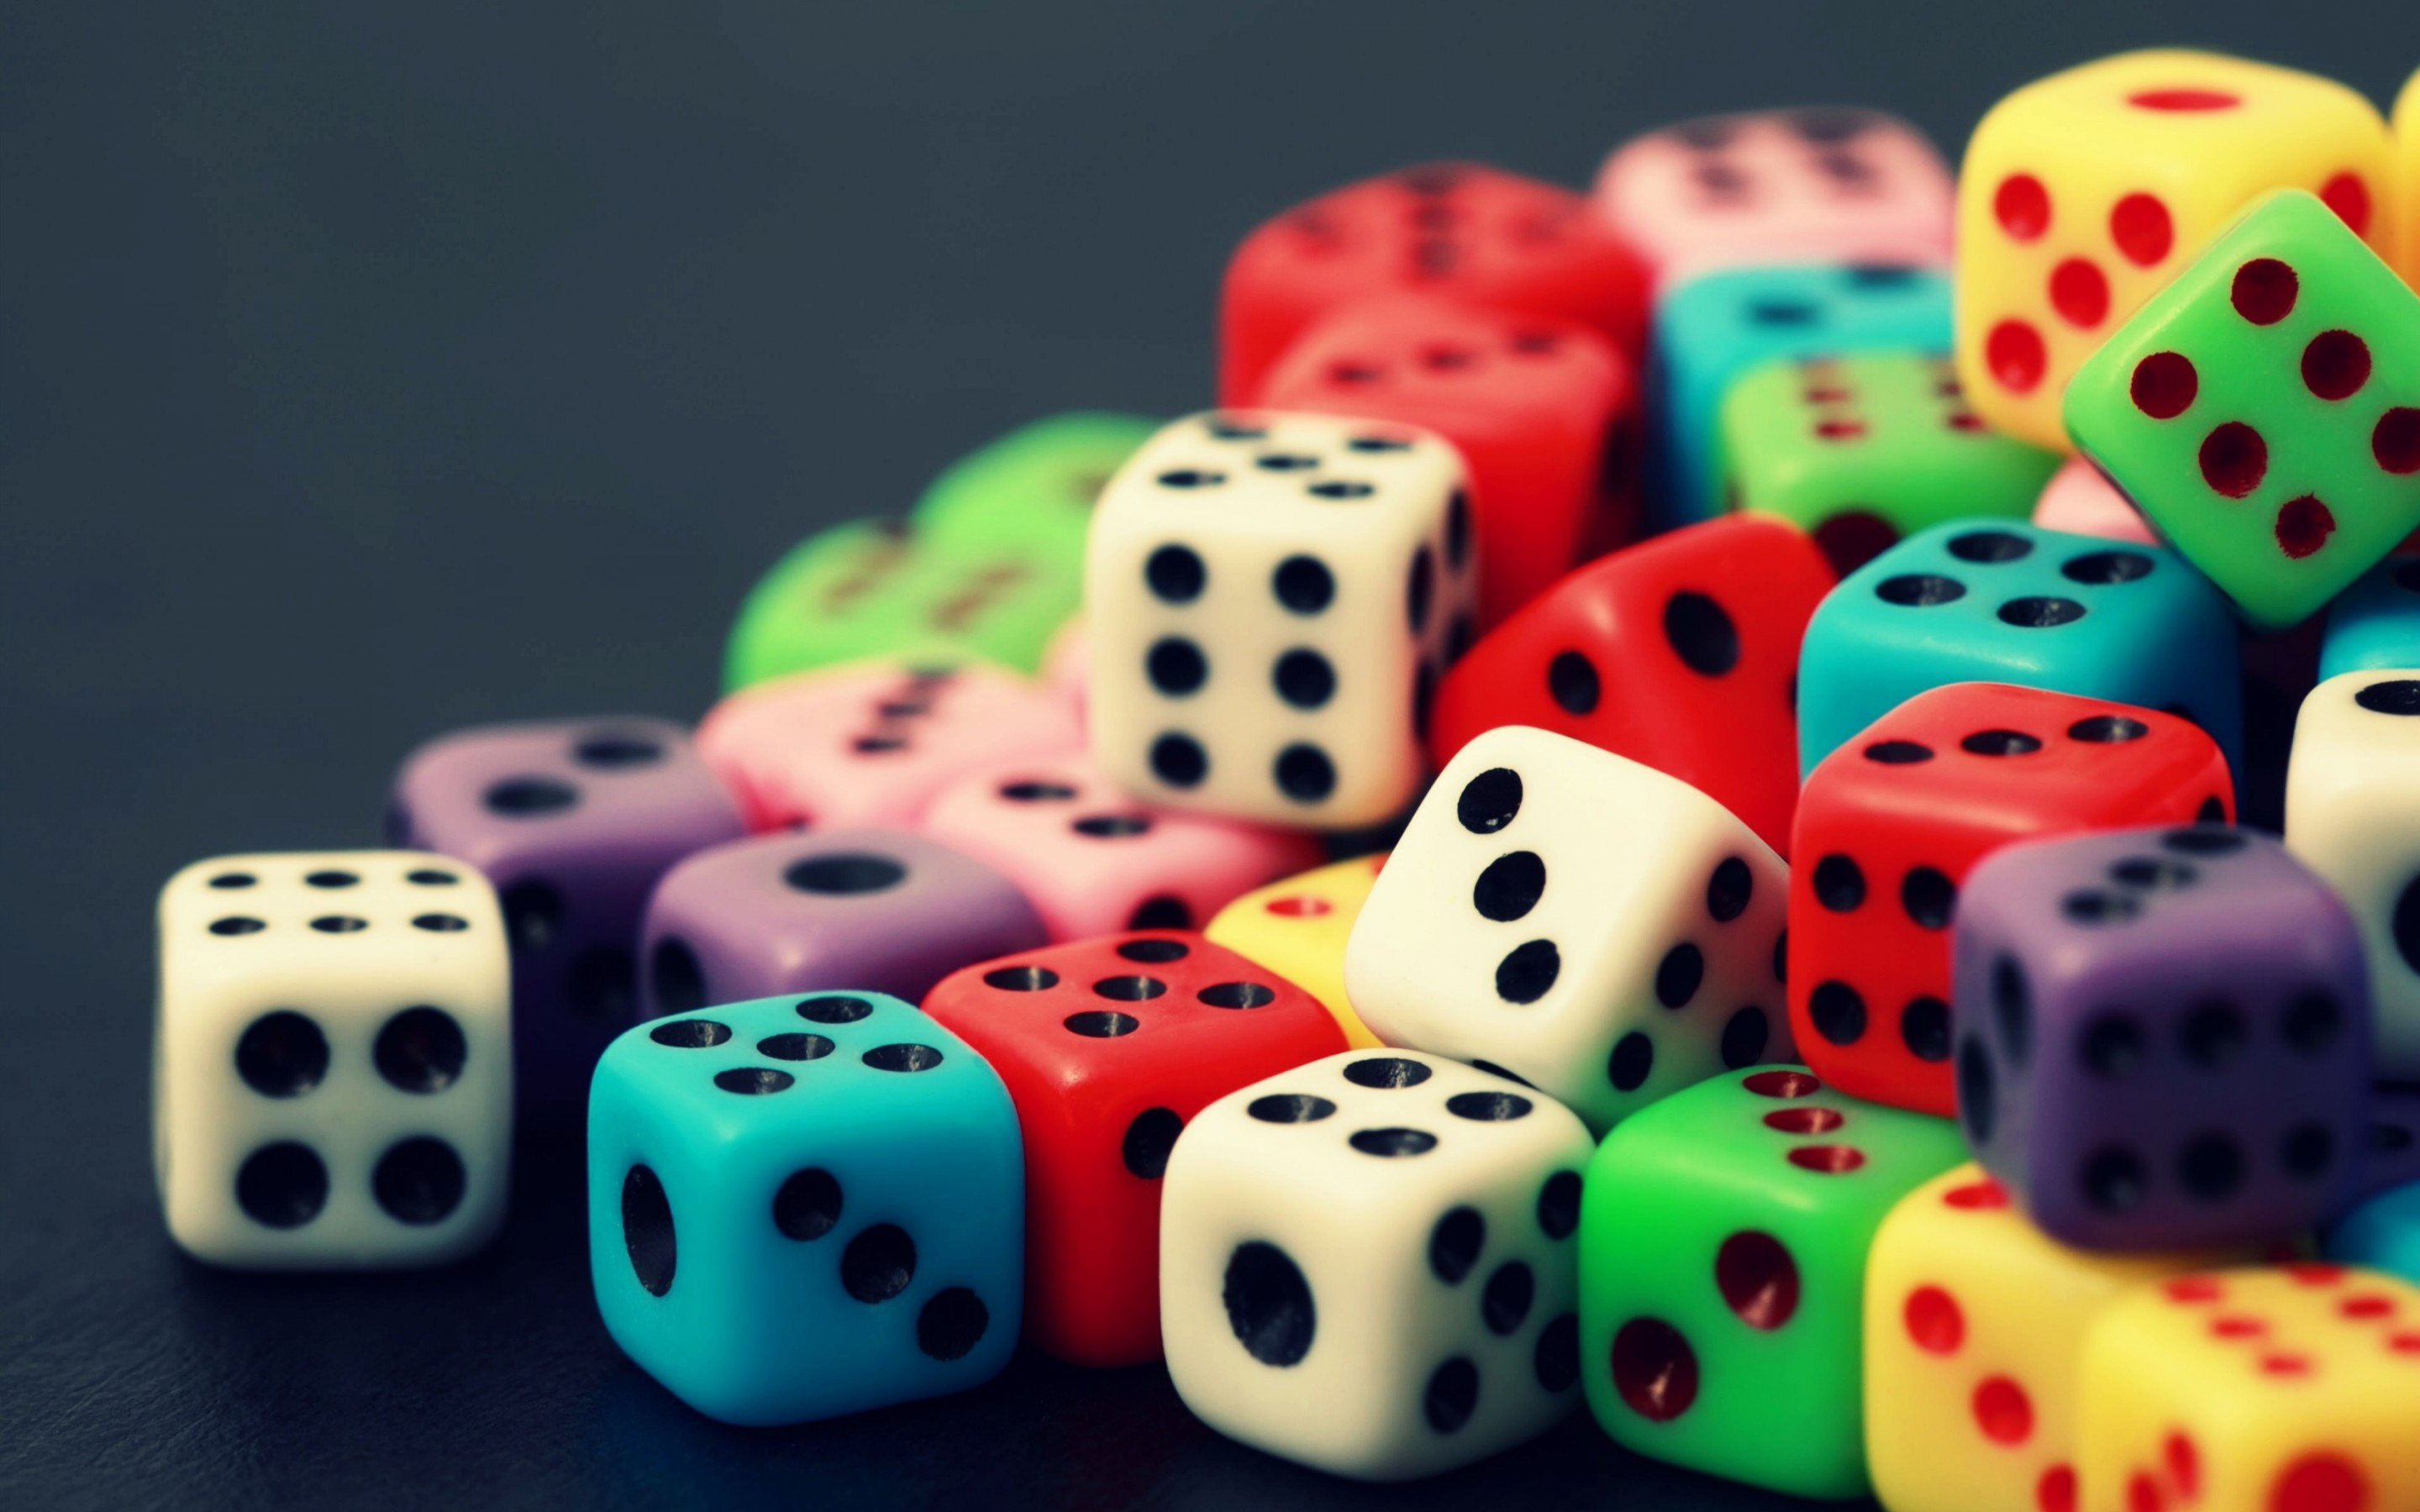 75 dice hd wallpapers